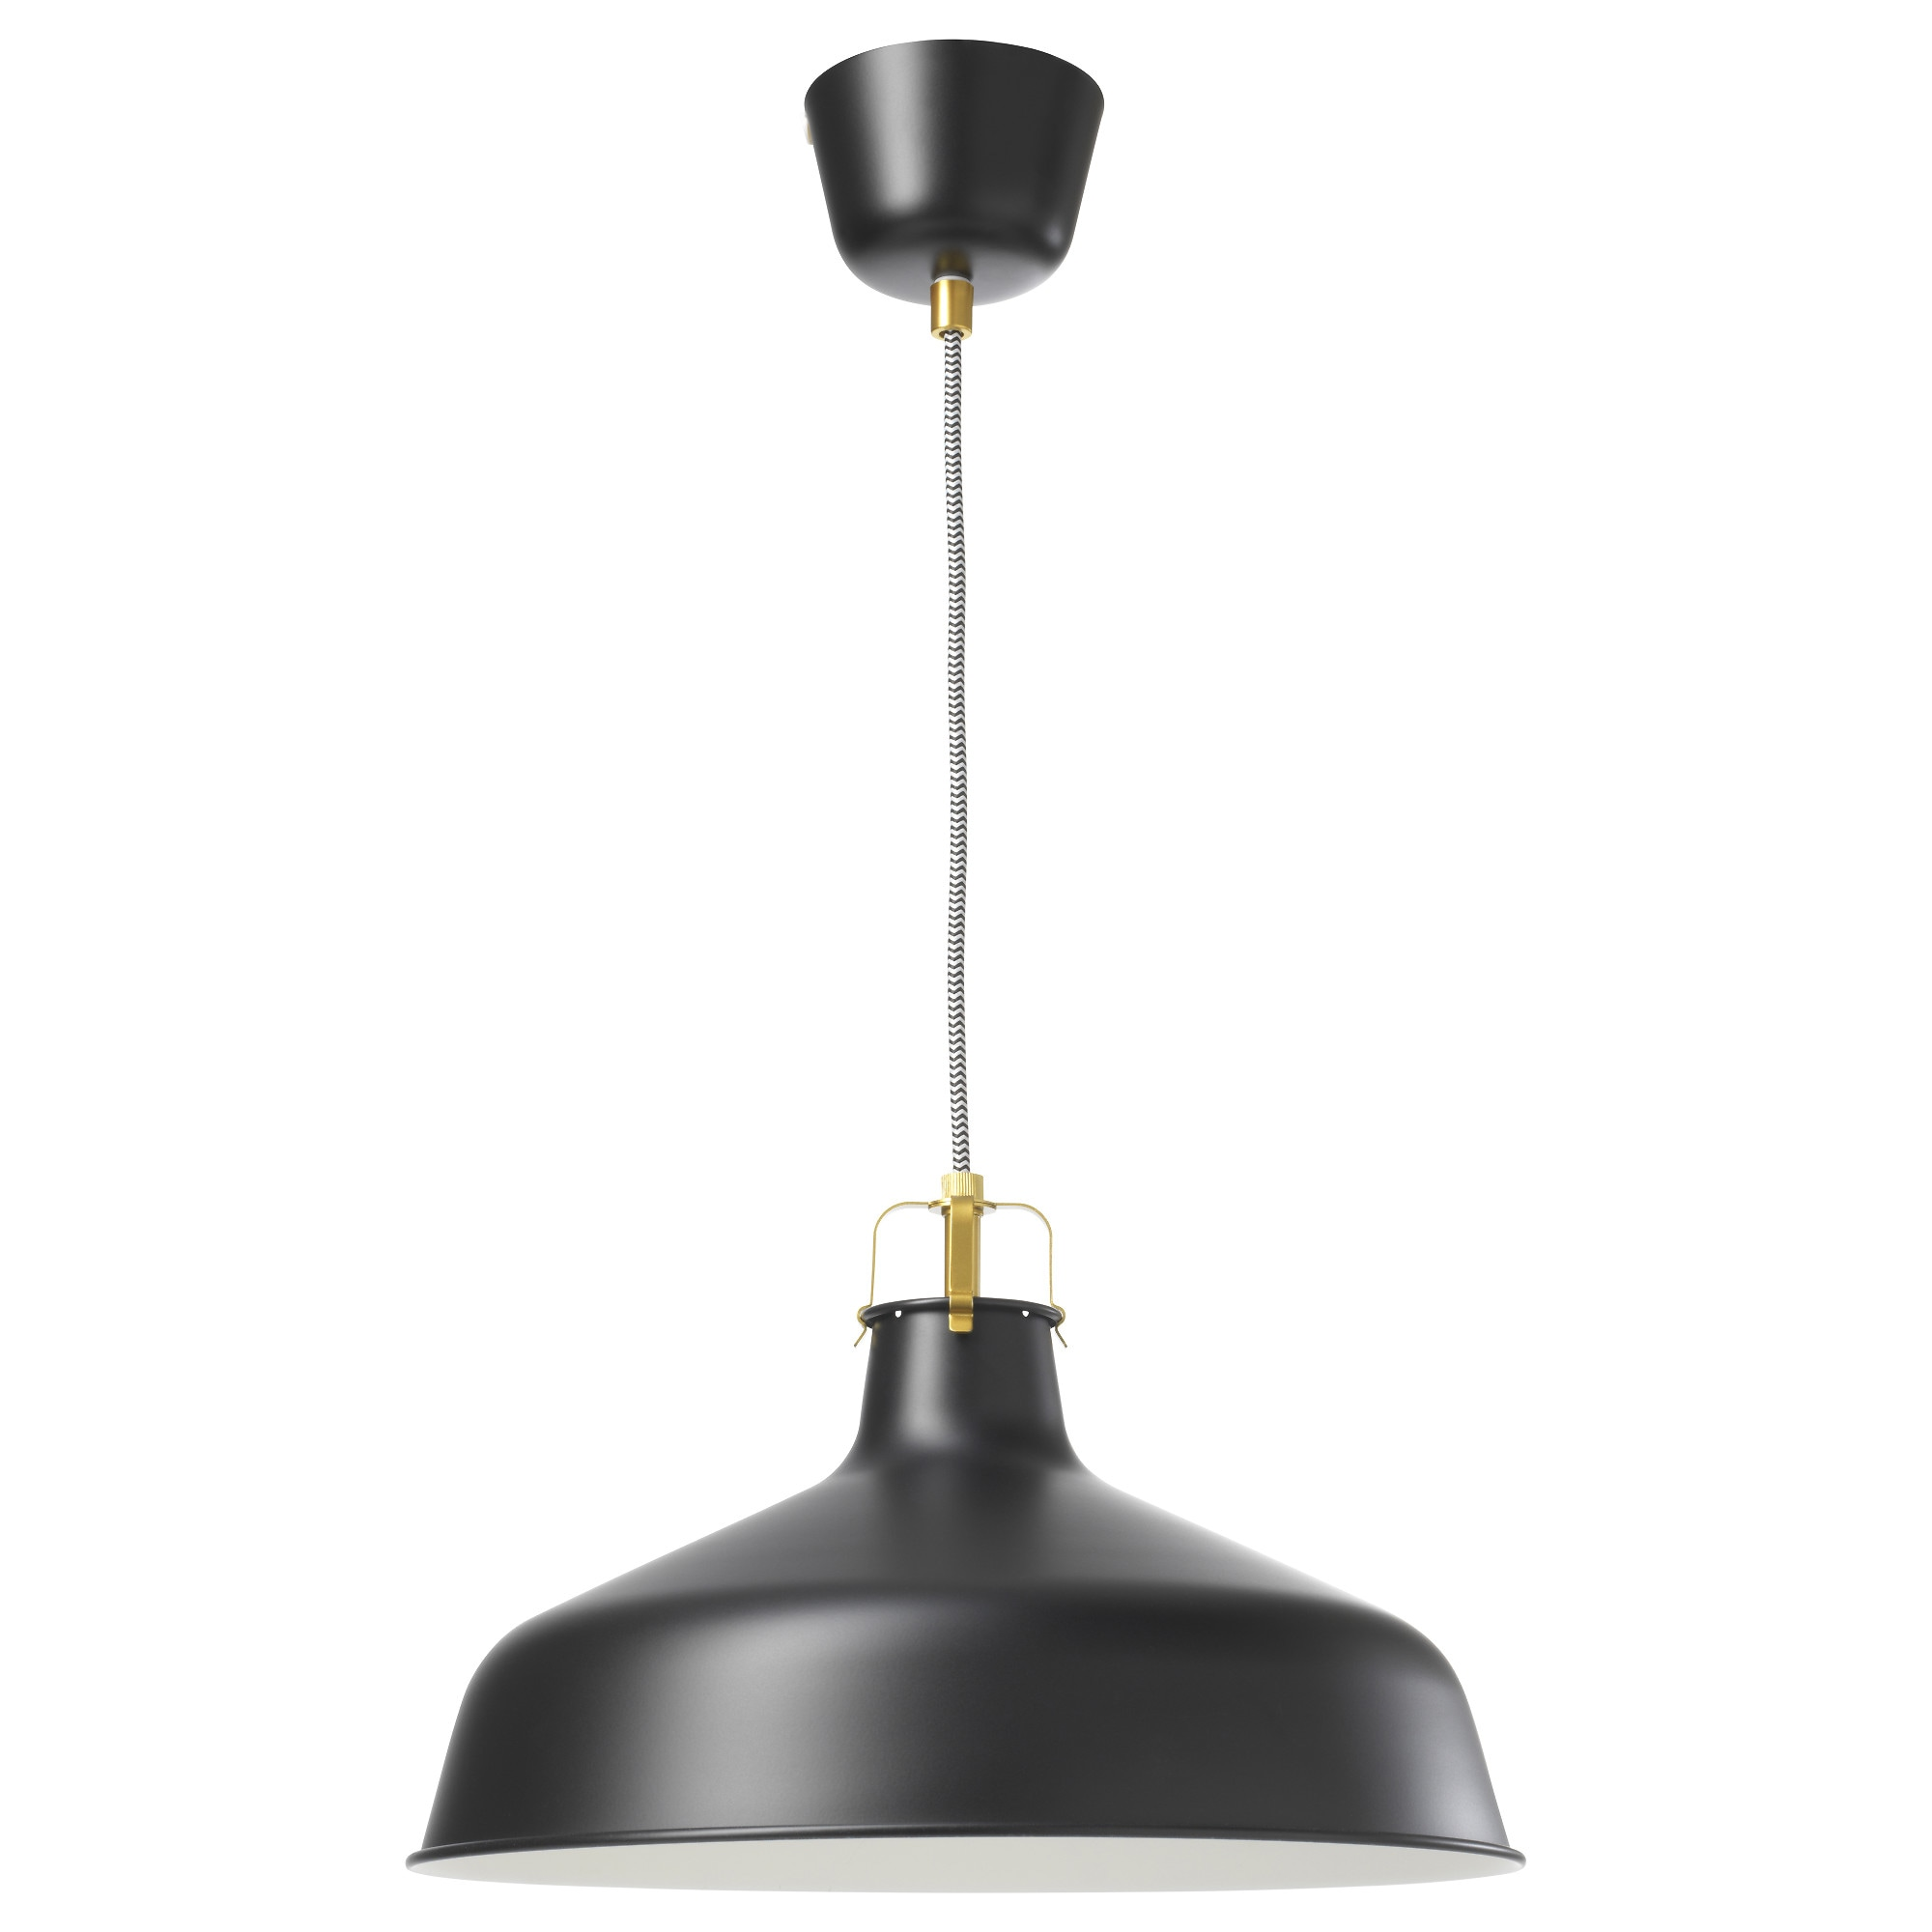 Ceiling lights lamps ikea ranarp pendant lamp arubaitofo Image collections